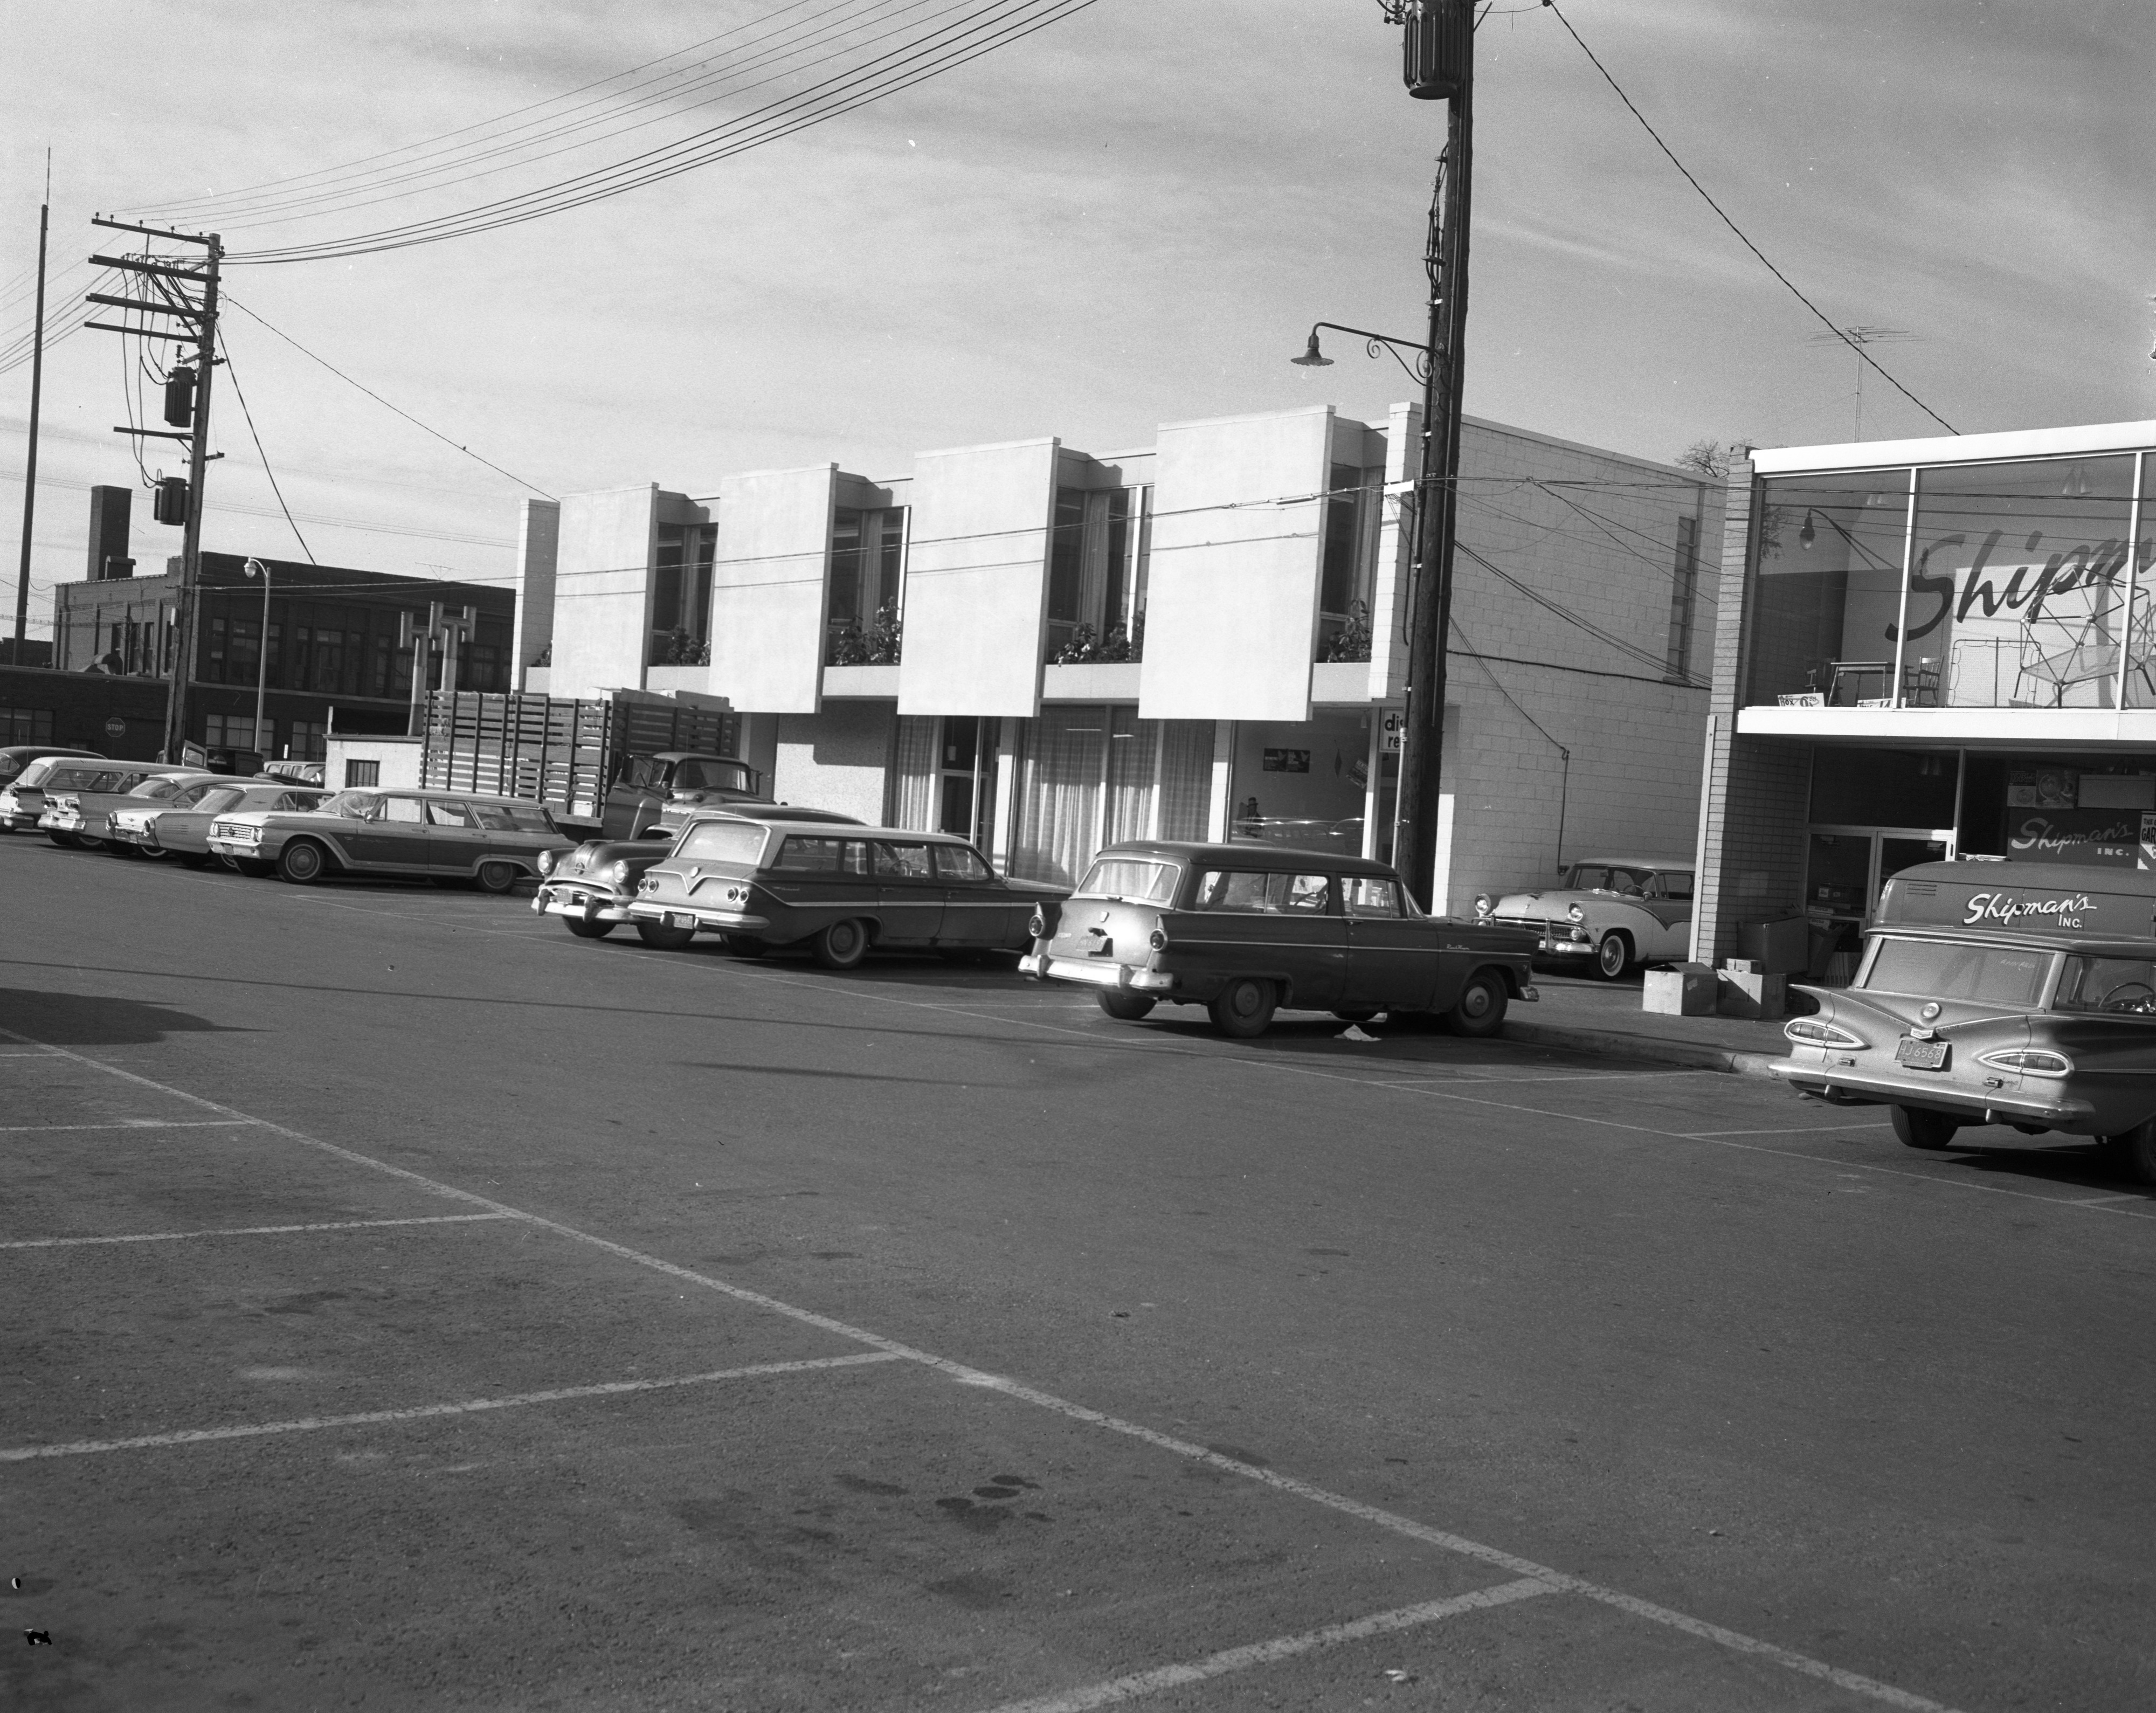 The Curtis Building With the Rear Exterior Of The Rubaiyat Restaurant, November 3, 1961 image